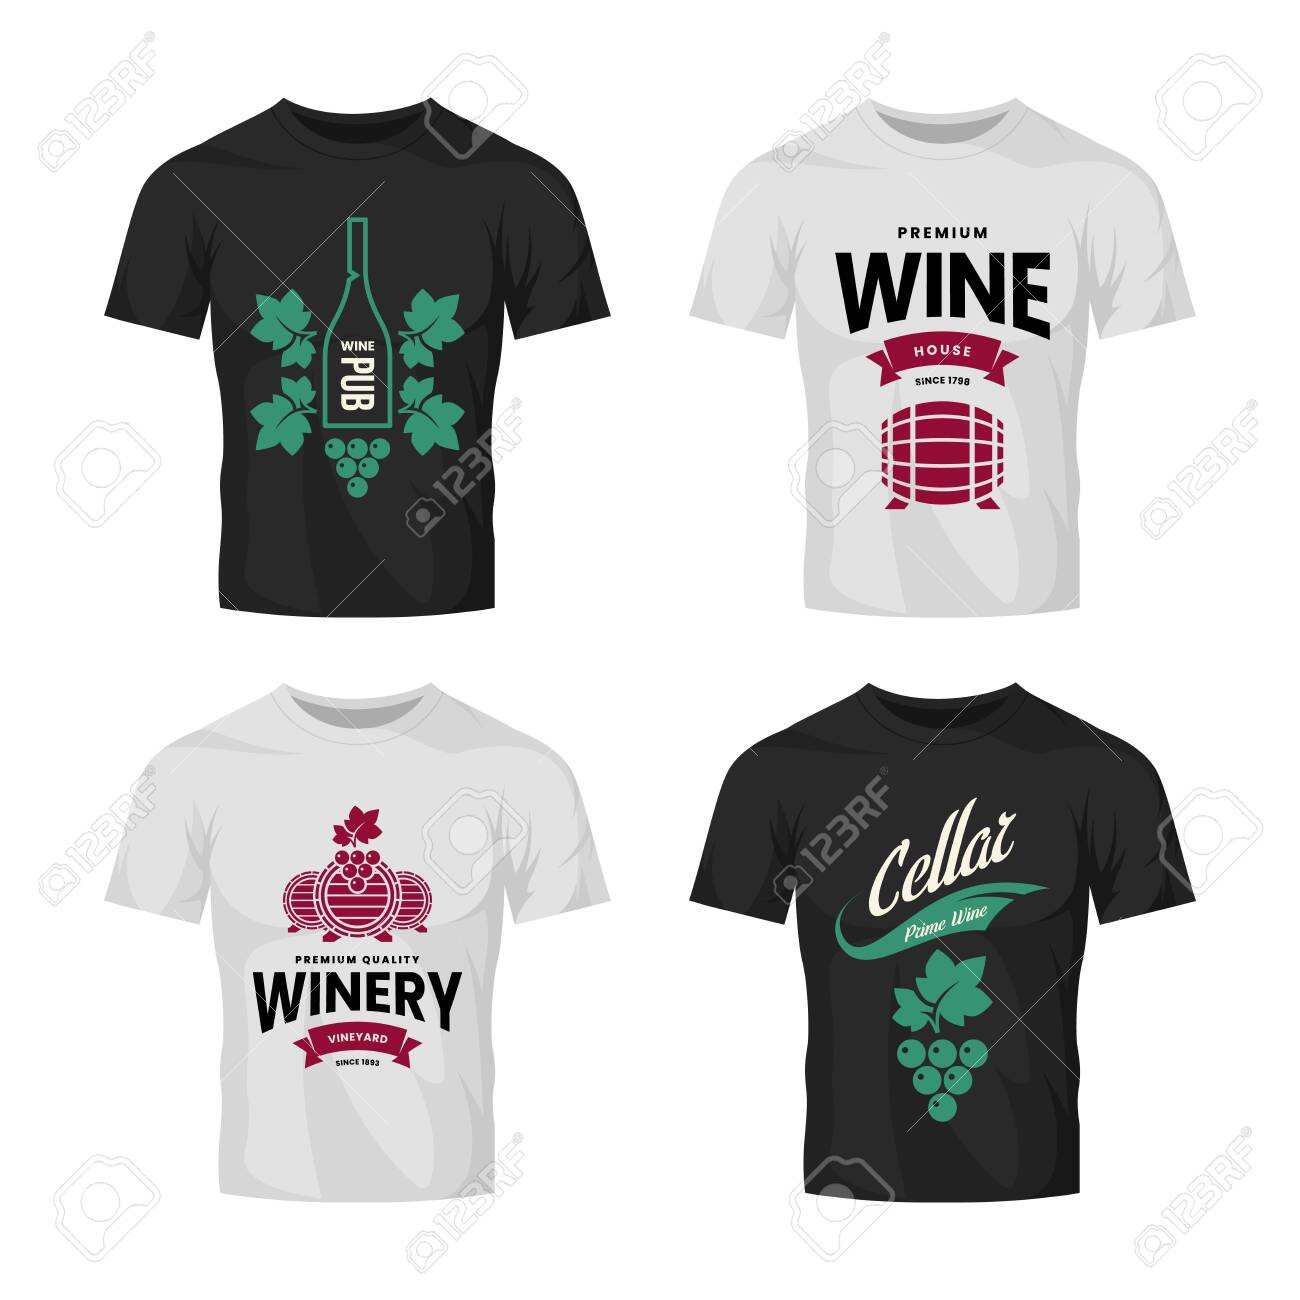 Modern wine vector logo collection for tavern, restaurant, house, shop, store, club and cellar on t-shirt mock up. Premium quality vinery logotype illustration set. Brand badge design template bundle. - 120438791